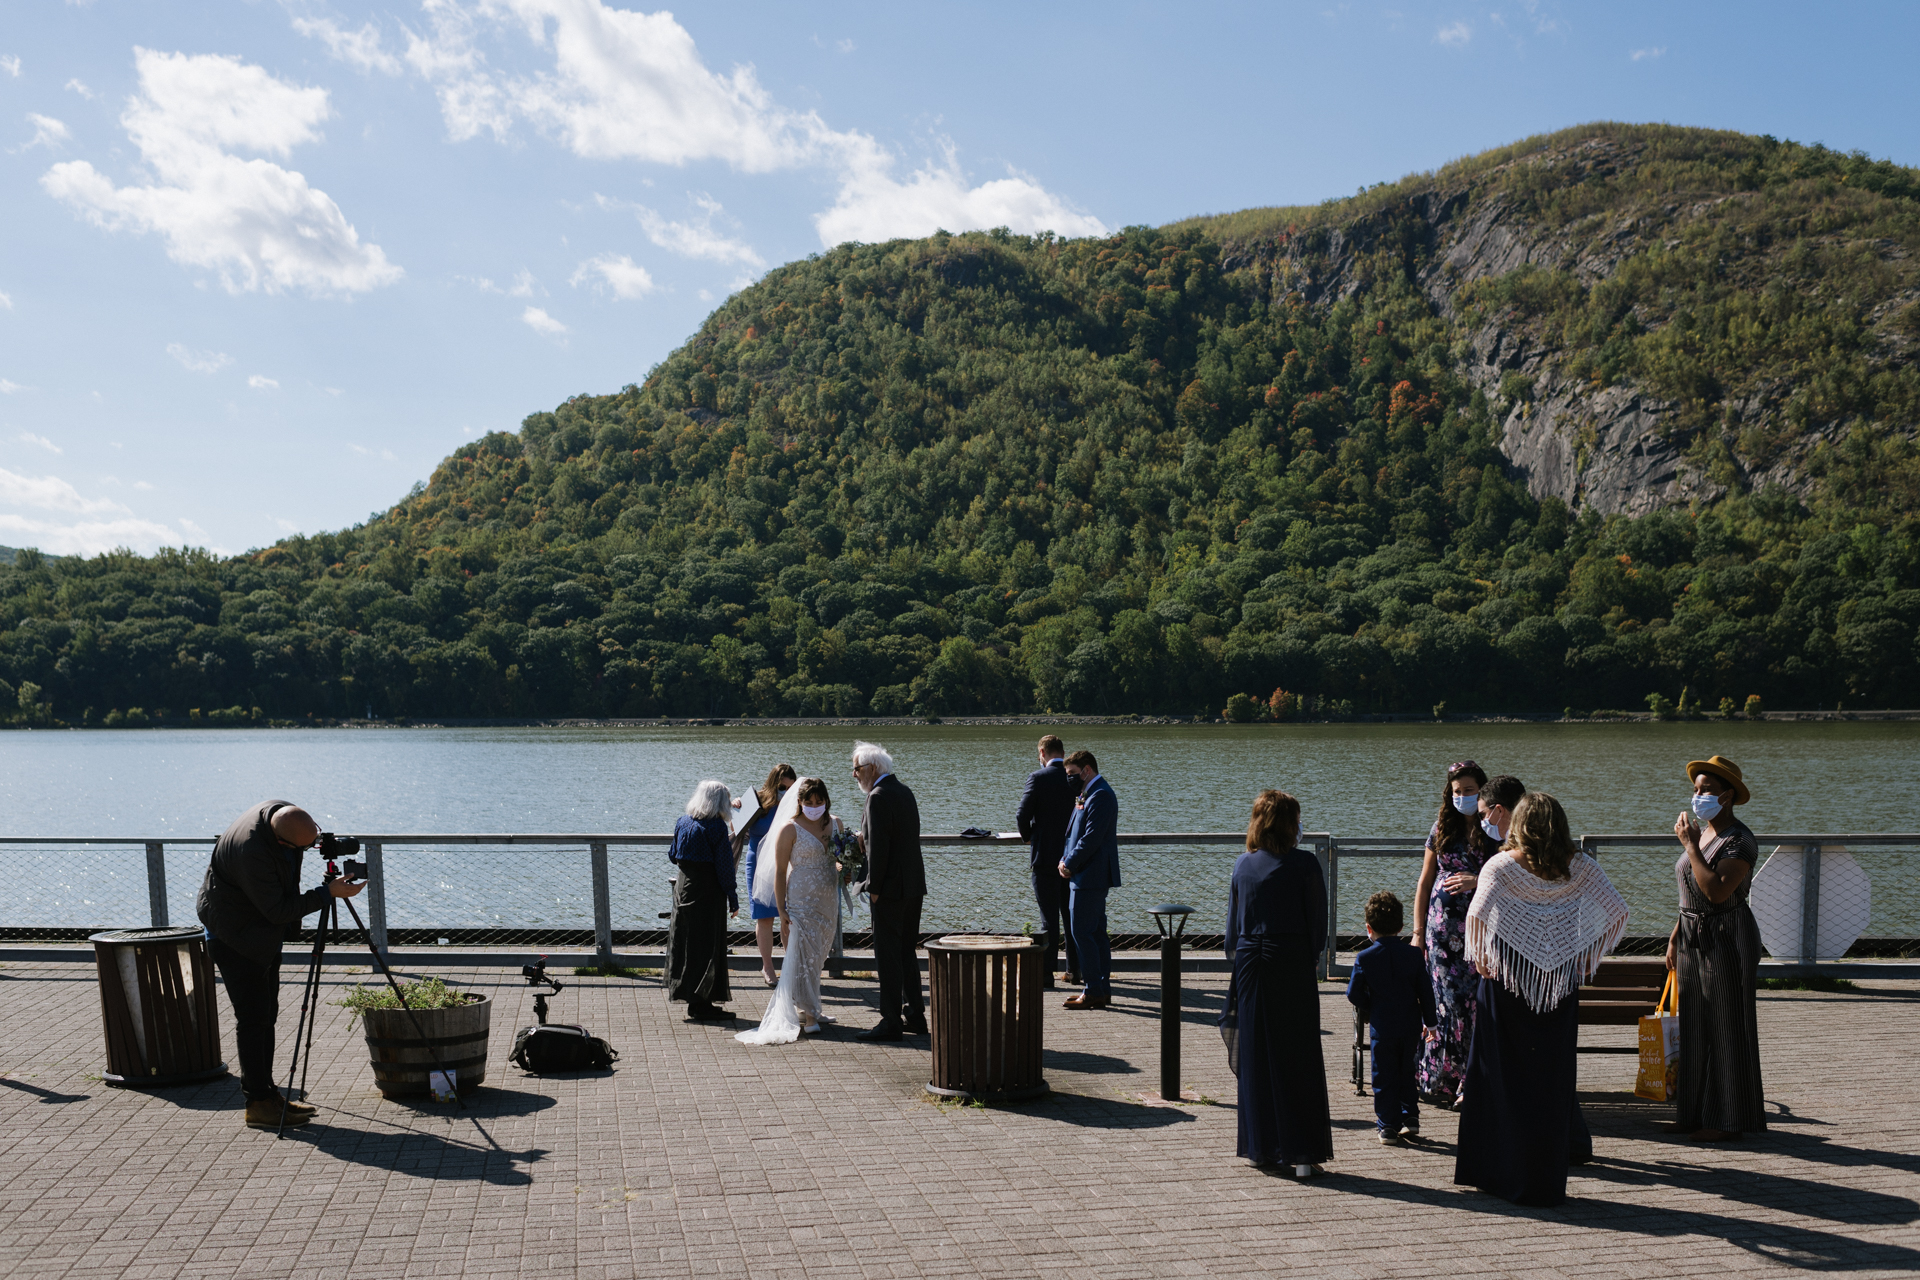 Dockside Park, Cold Spring, NY Wedding Ceremony Image | The couple prepares to marry each other